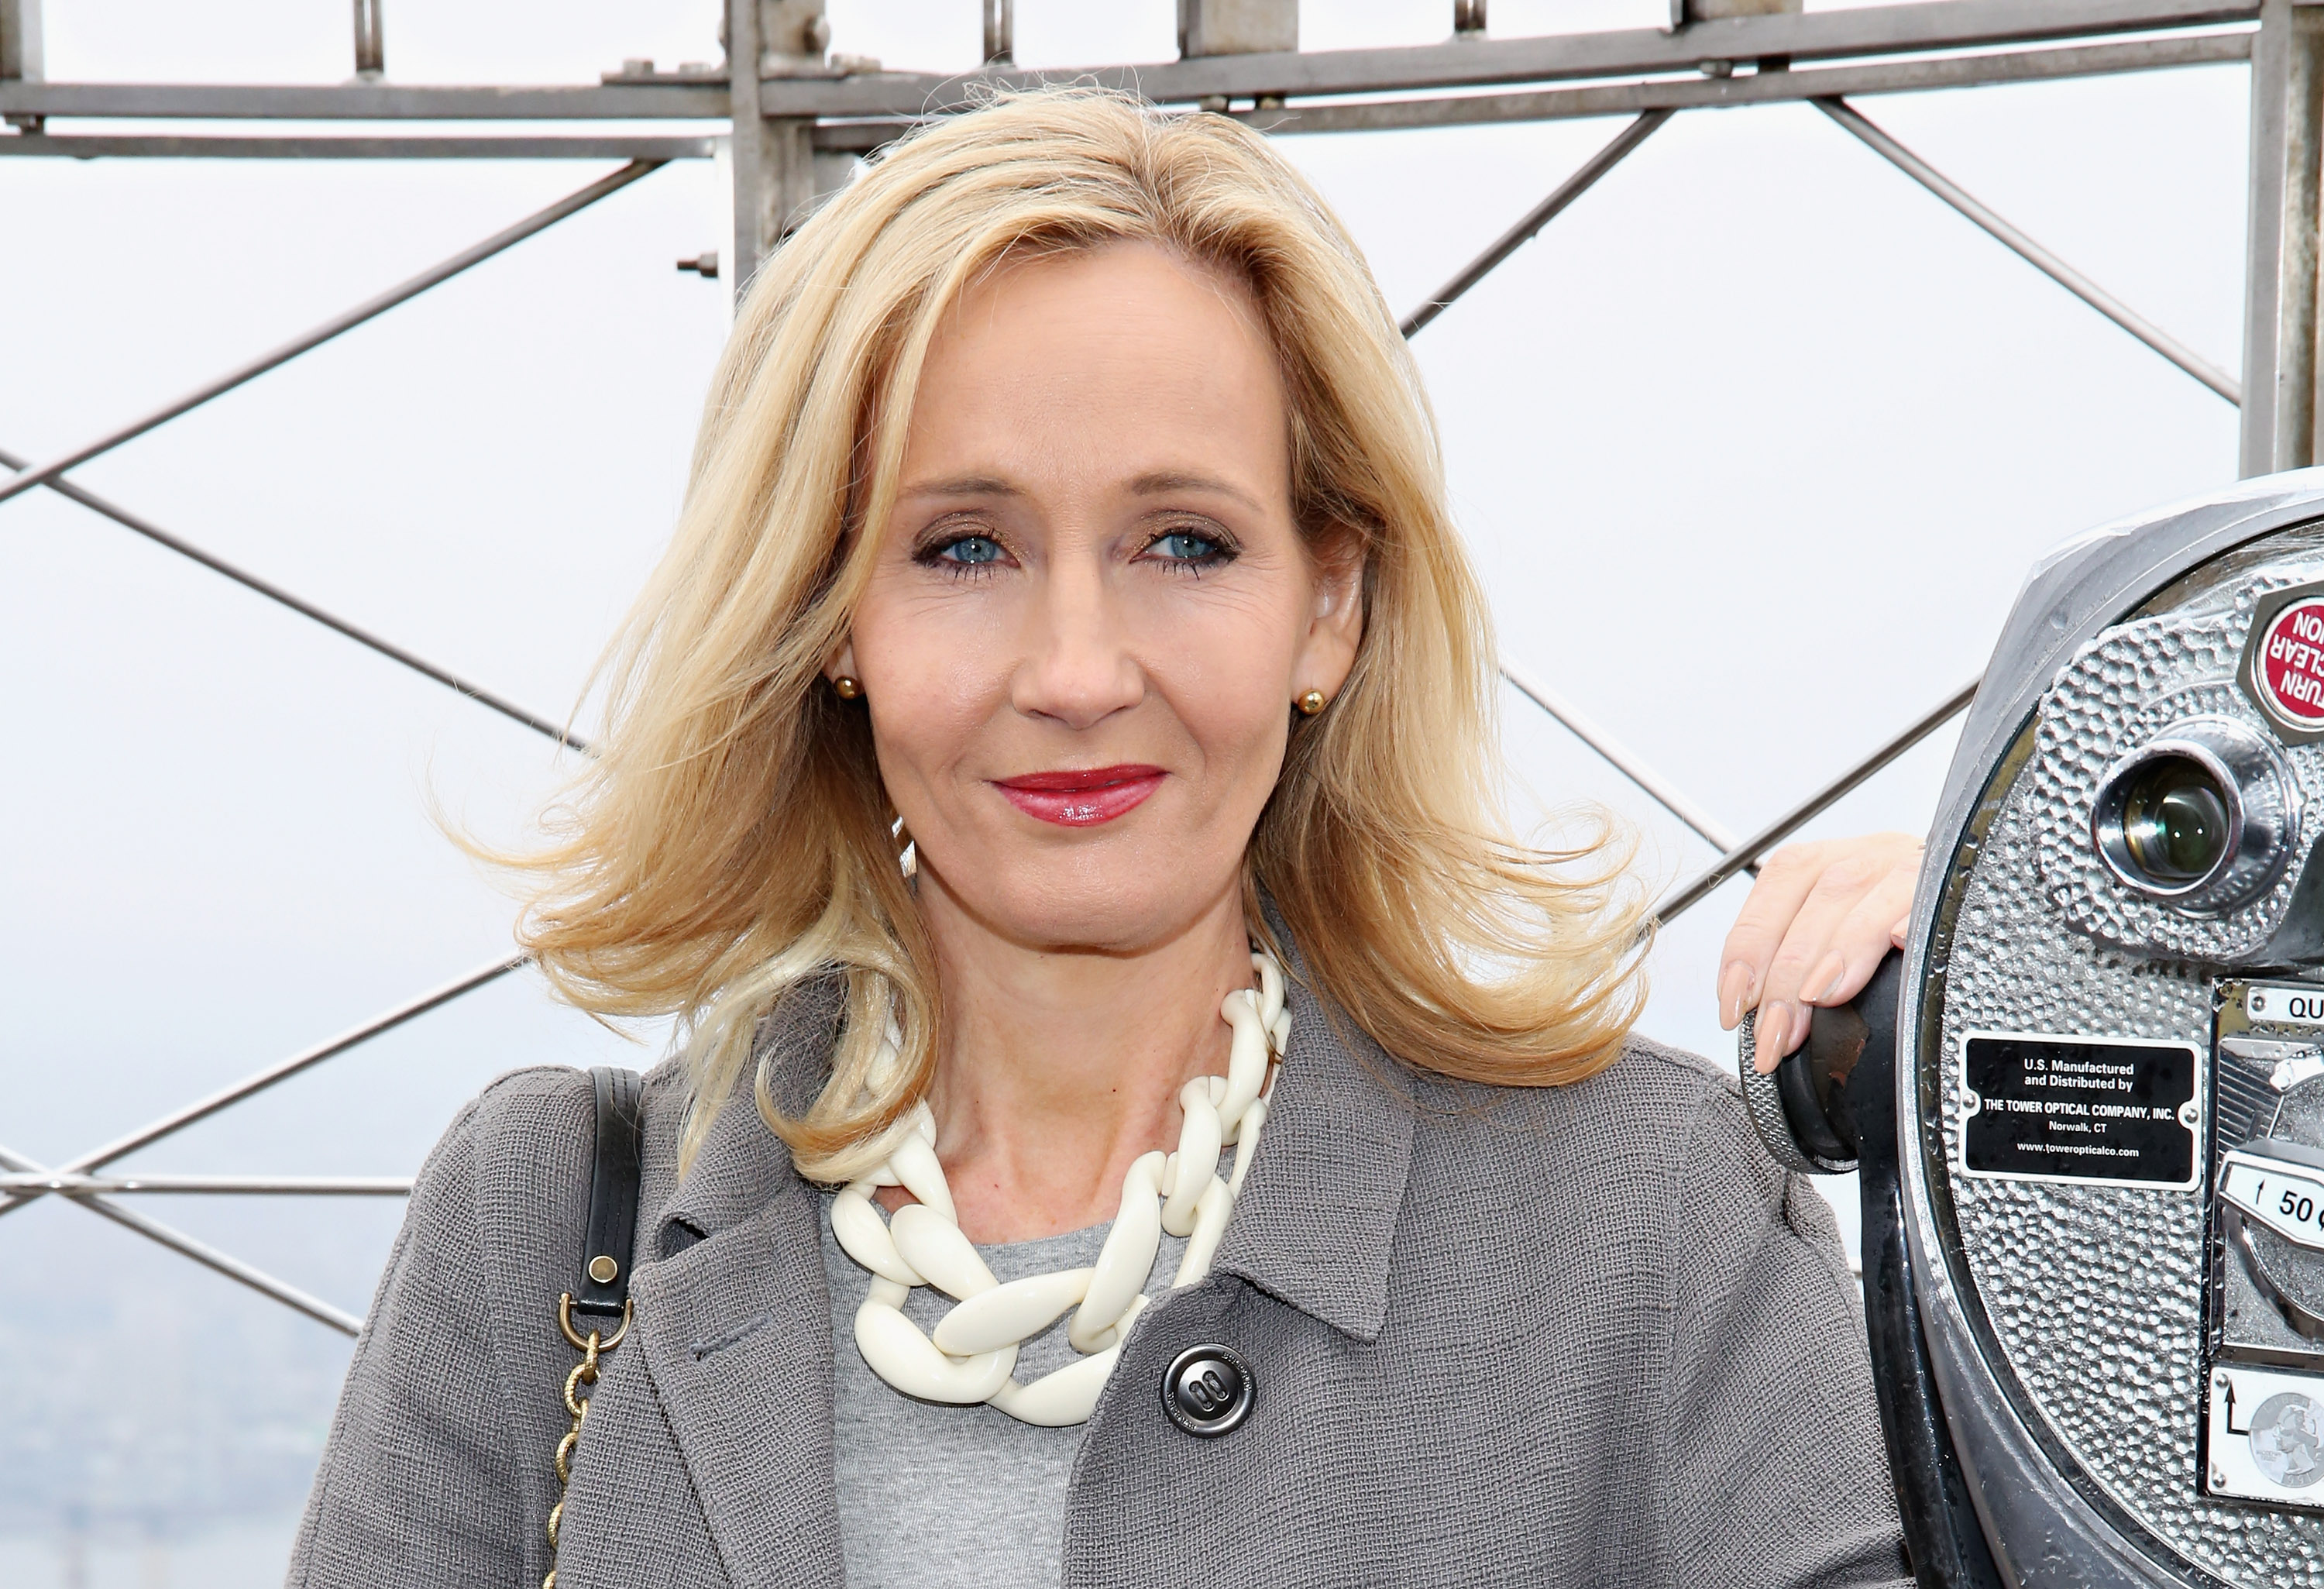 Founder and President of Lumos and Patron of Lumos USA/ Author J.K. Rowling ceremoniously lights the Empire State Building on April 9, 2015 in New York City.